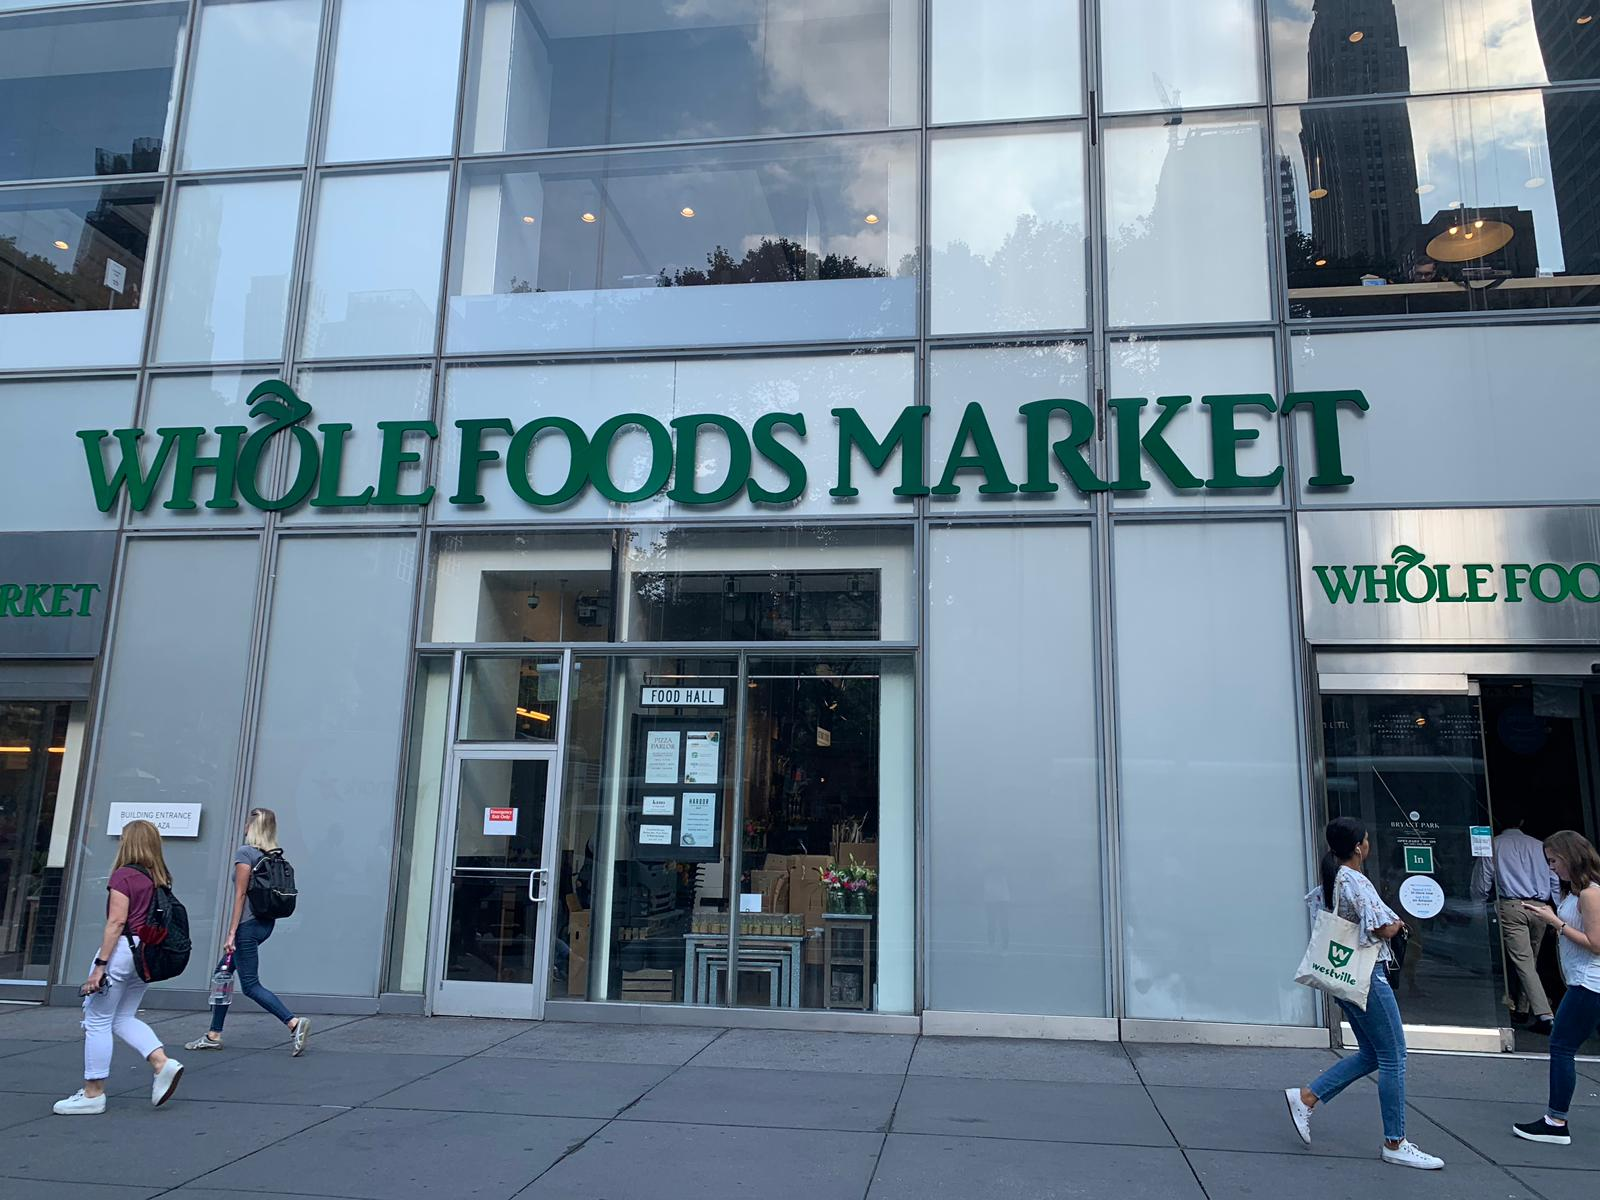 Supermercados em Nova York - WHole Foods